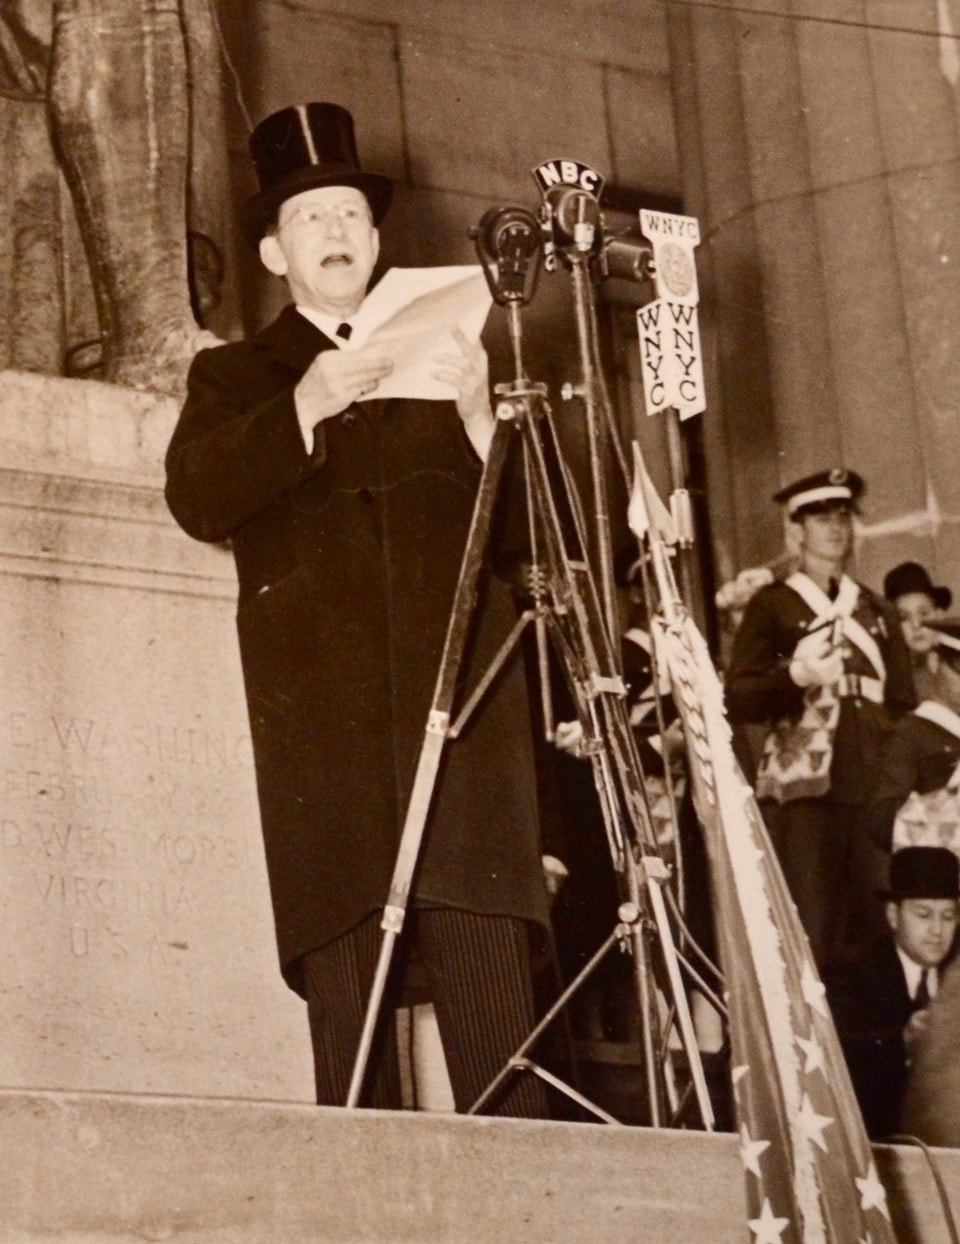 On April 30, 1939, the sesquicentennial of George Washington's inauguration as president in New York City, George McAneny stood on the steps of Federal Hall to proclaim it a national historic site, one of the first urban sites to be so designated.